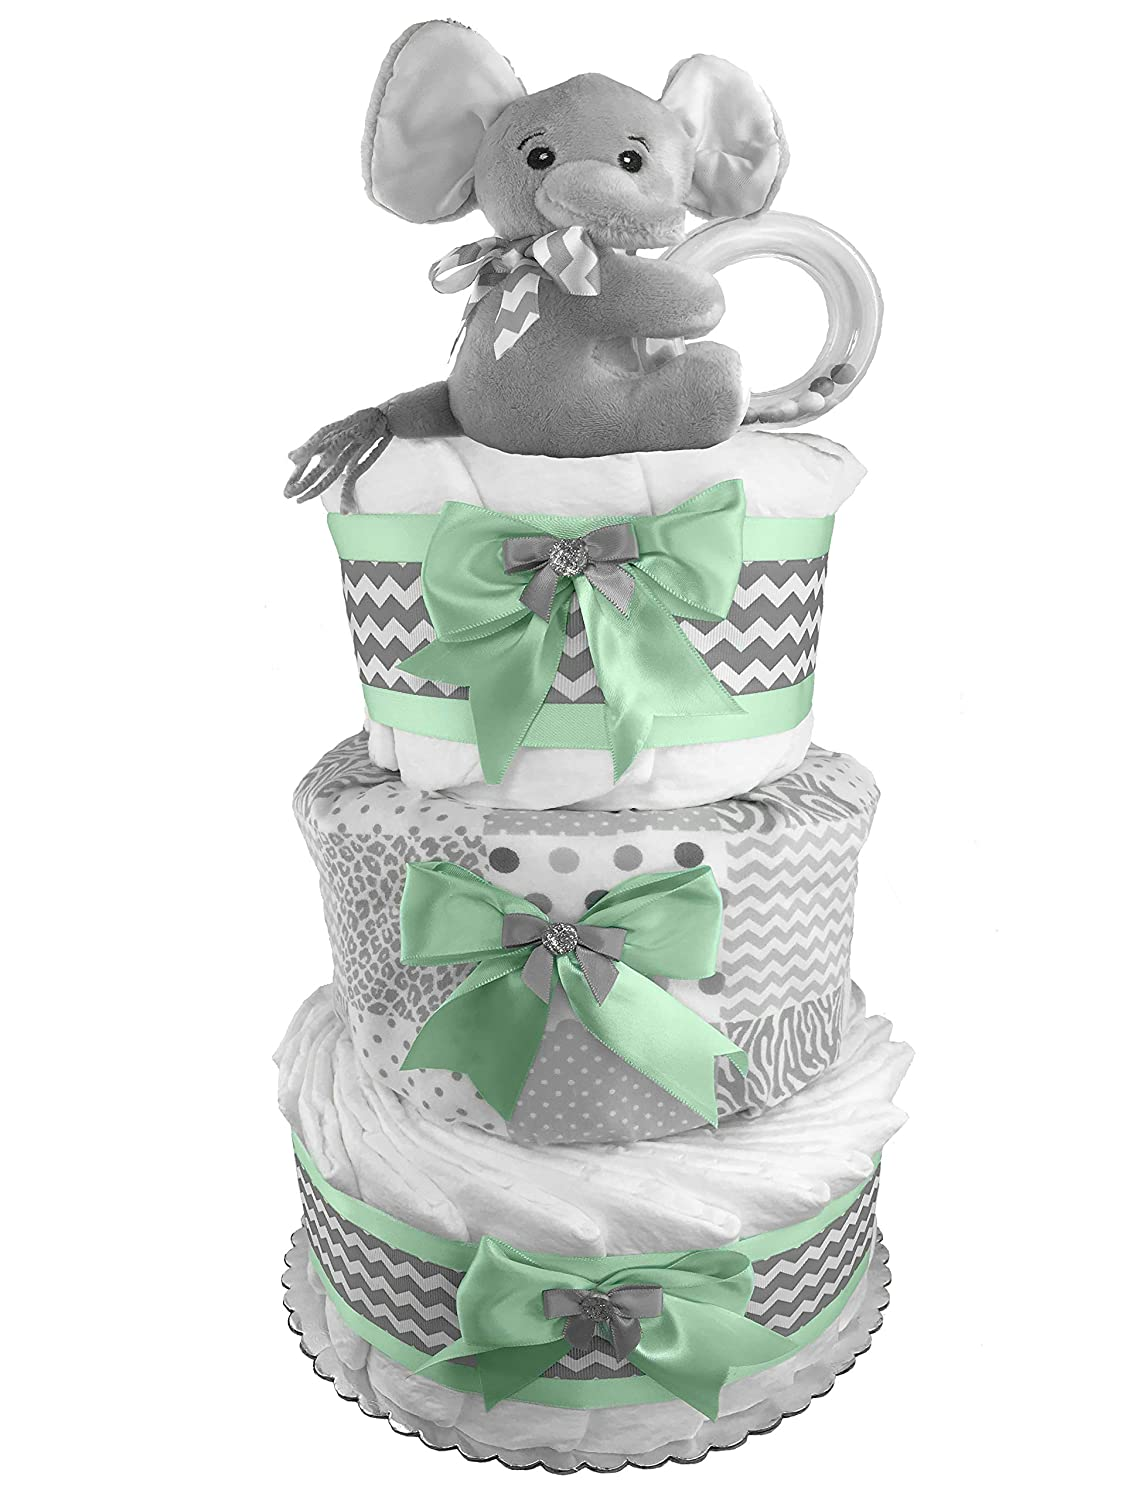 Elephant 3-Tier Diaper Cake - Baby Shower Centerpiece - Mint and Gray Sunshine Gift Baskets